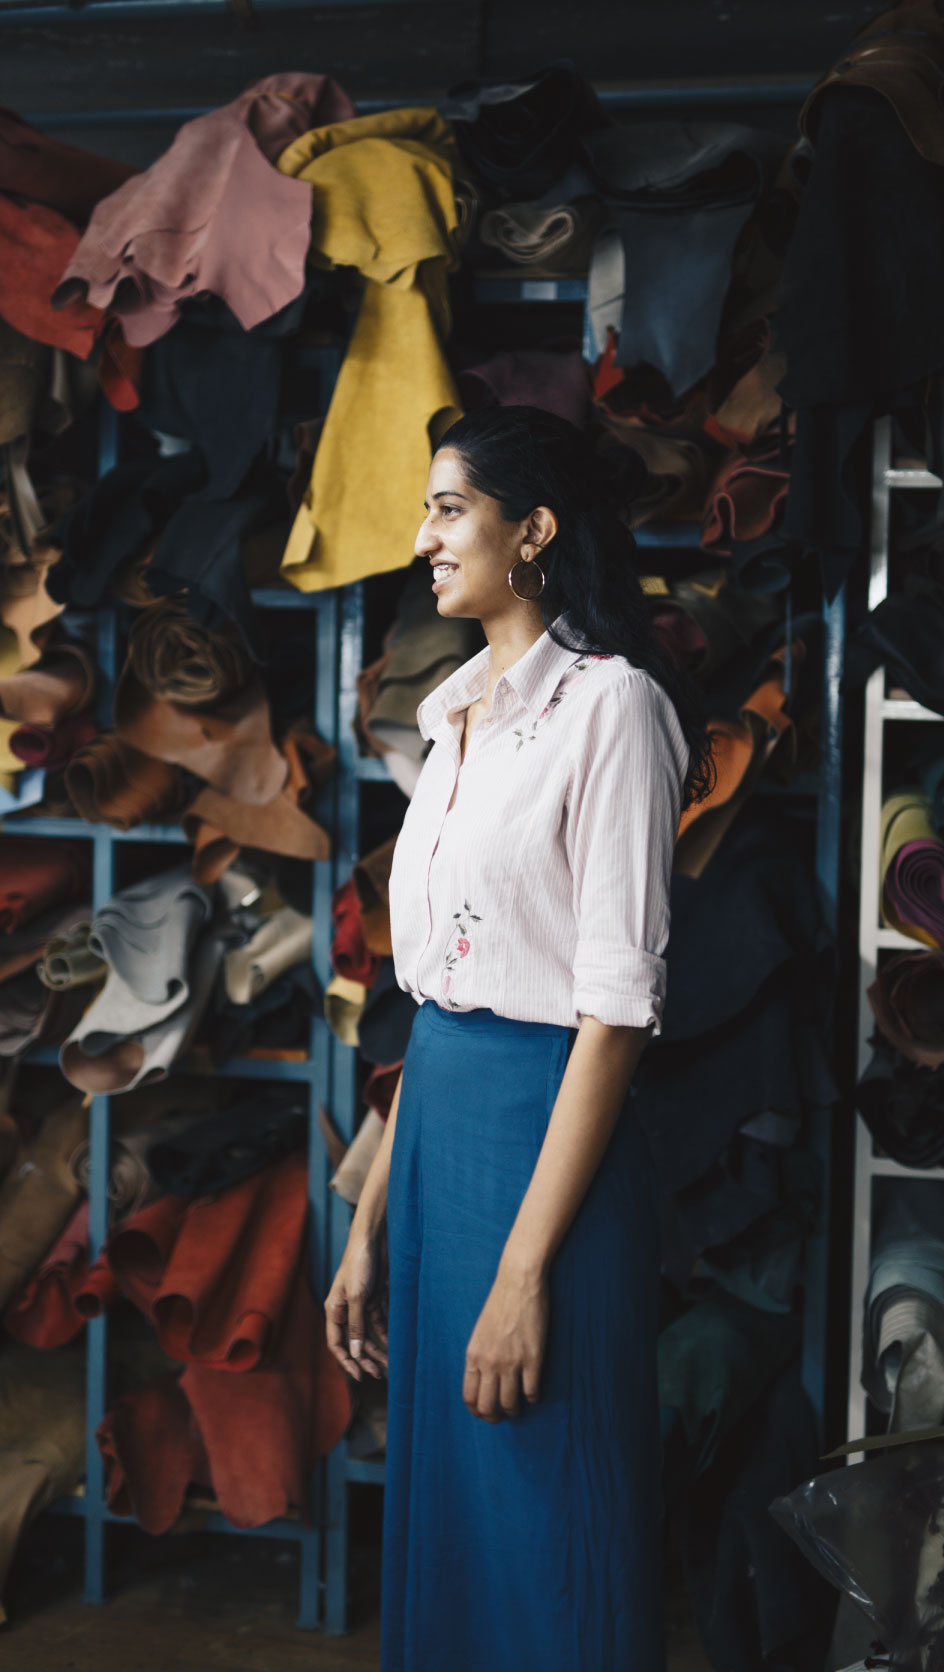 #Intervue: Meet Sruti Ashok of INAI